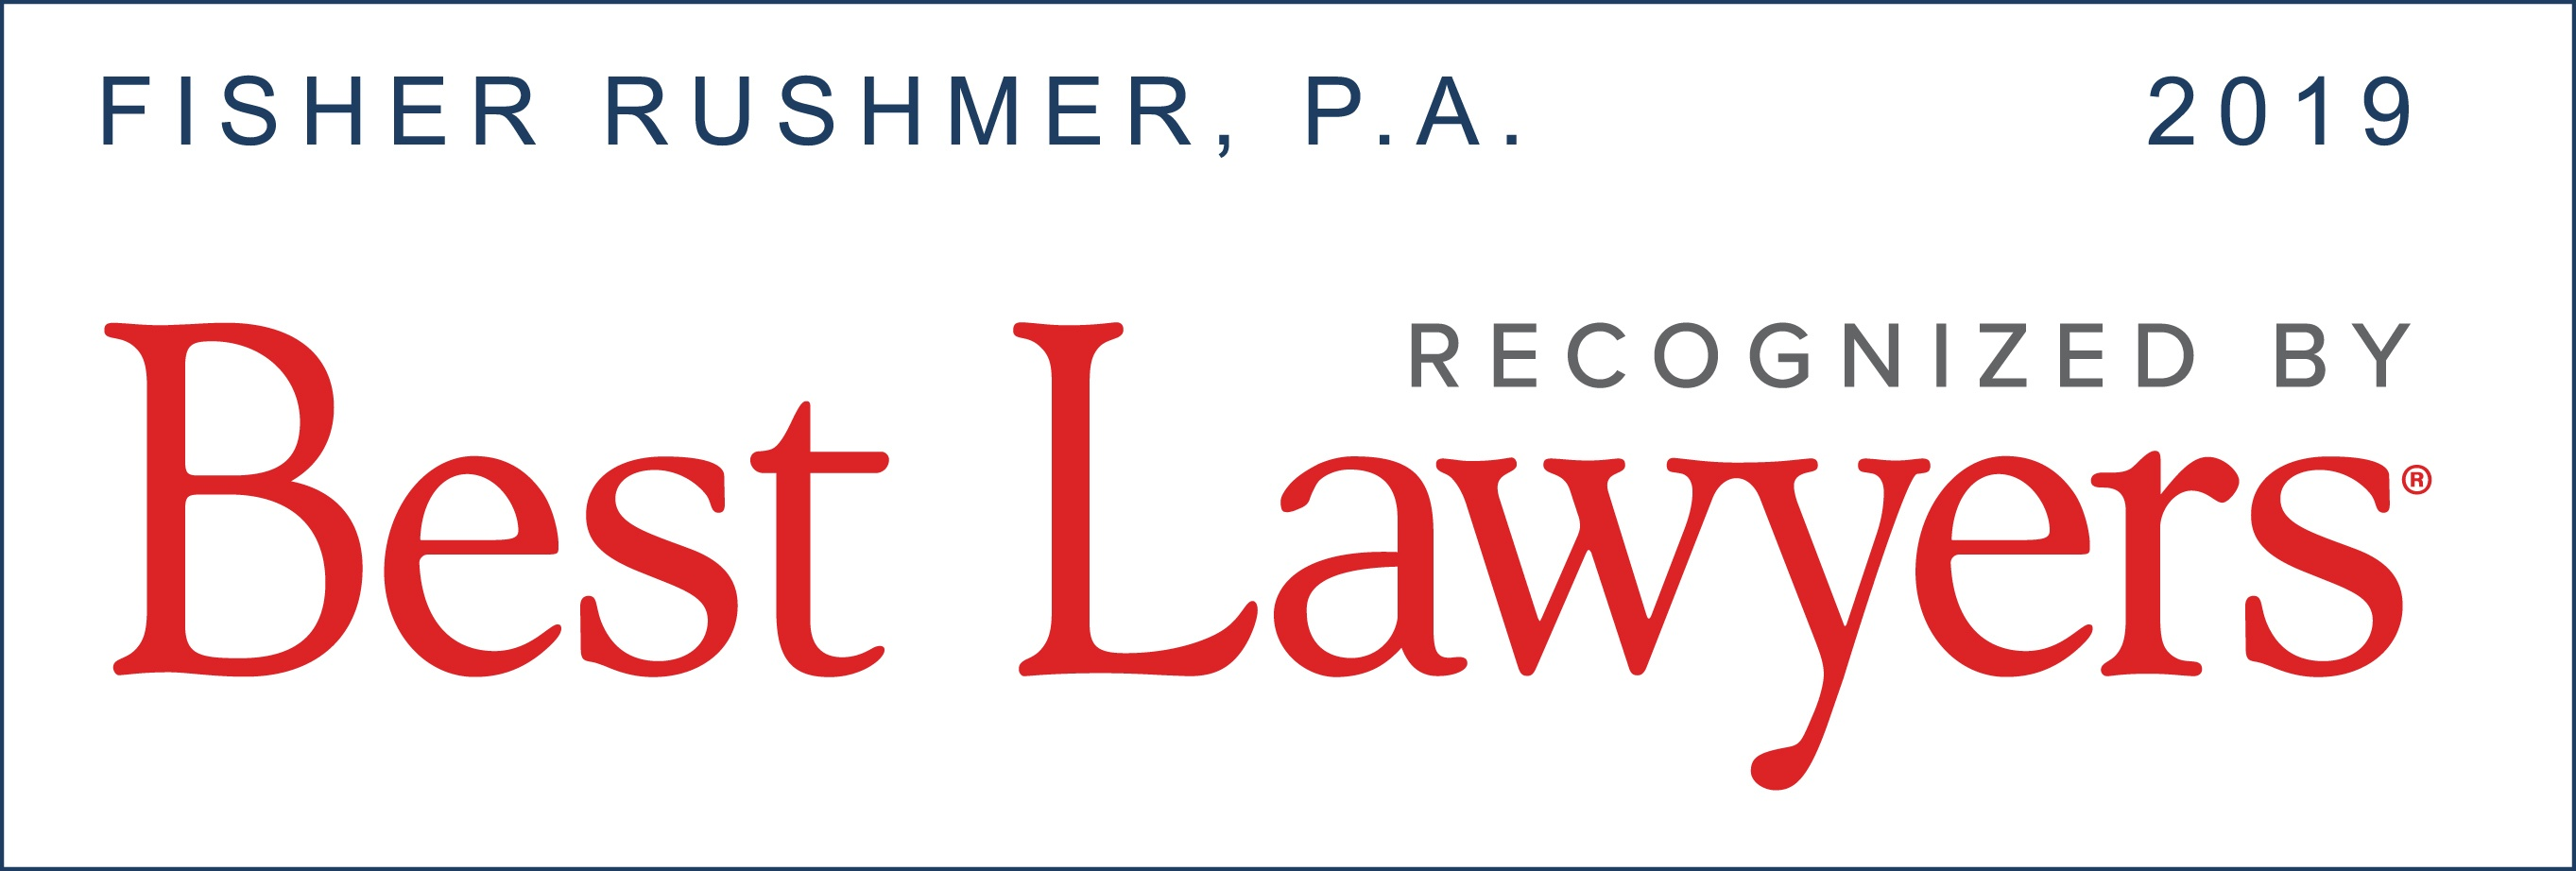 Best Lawyers Fisher Rushmer, P.A.